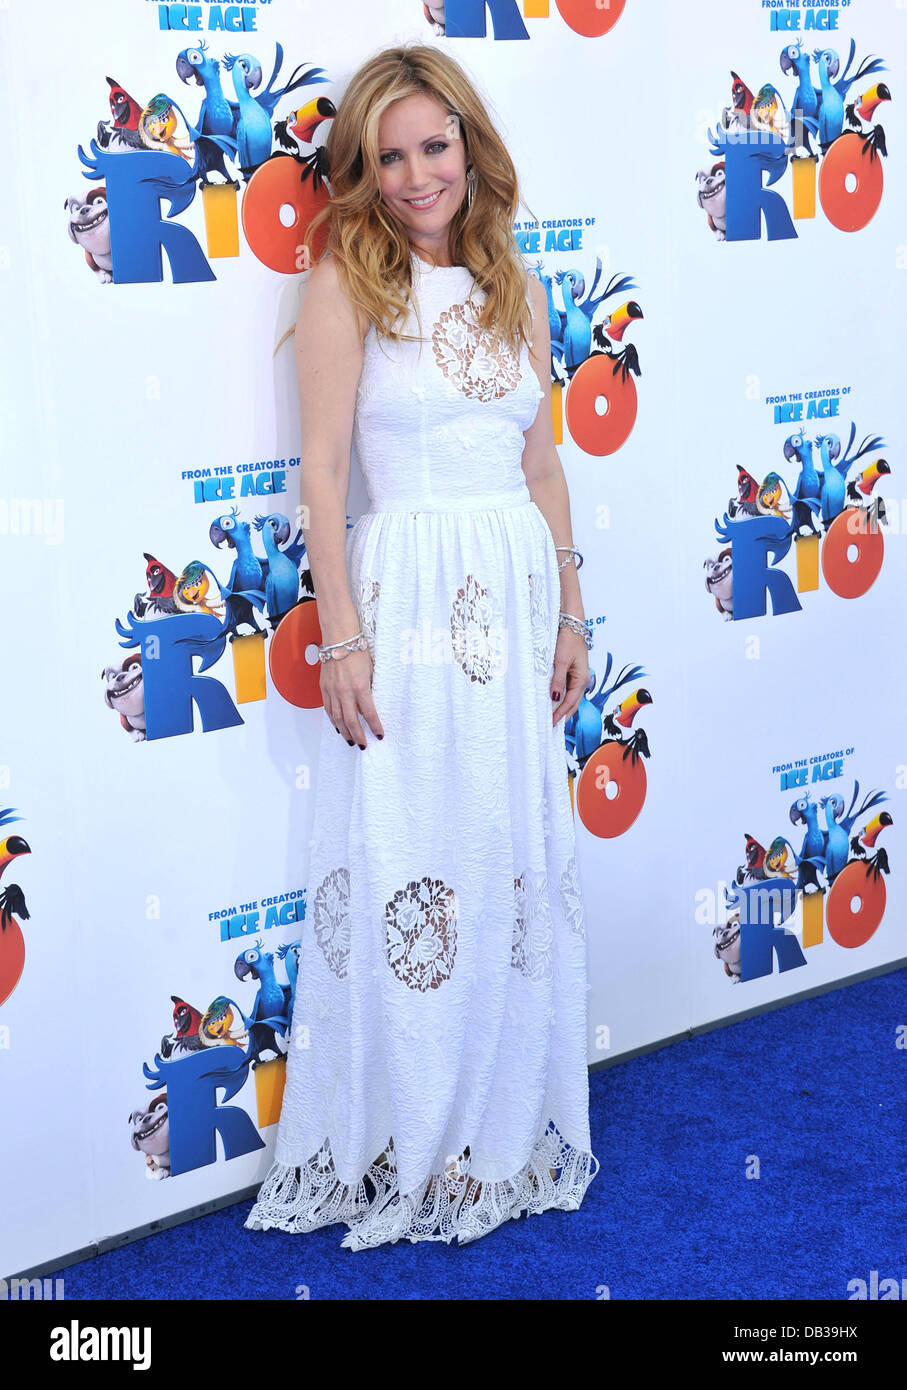 Leslie Mann Los Angeles Premiere of 'Rio' held at the Grauman's Chinese Theatre Los Angeles, California - Stock Image